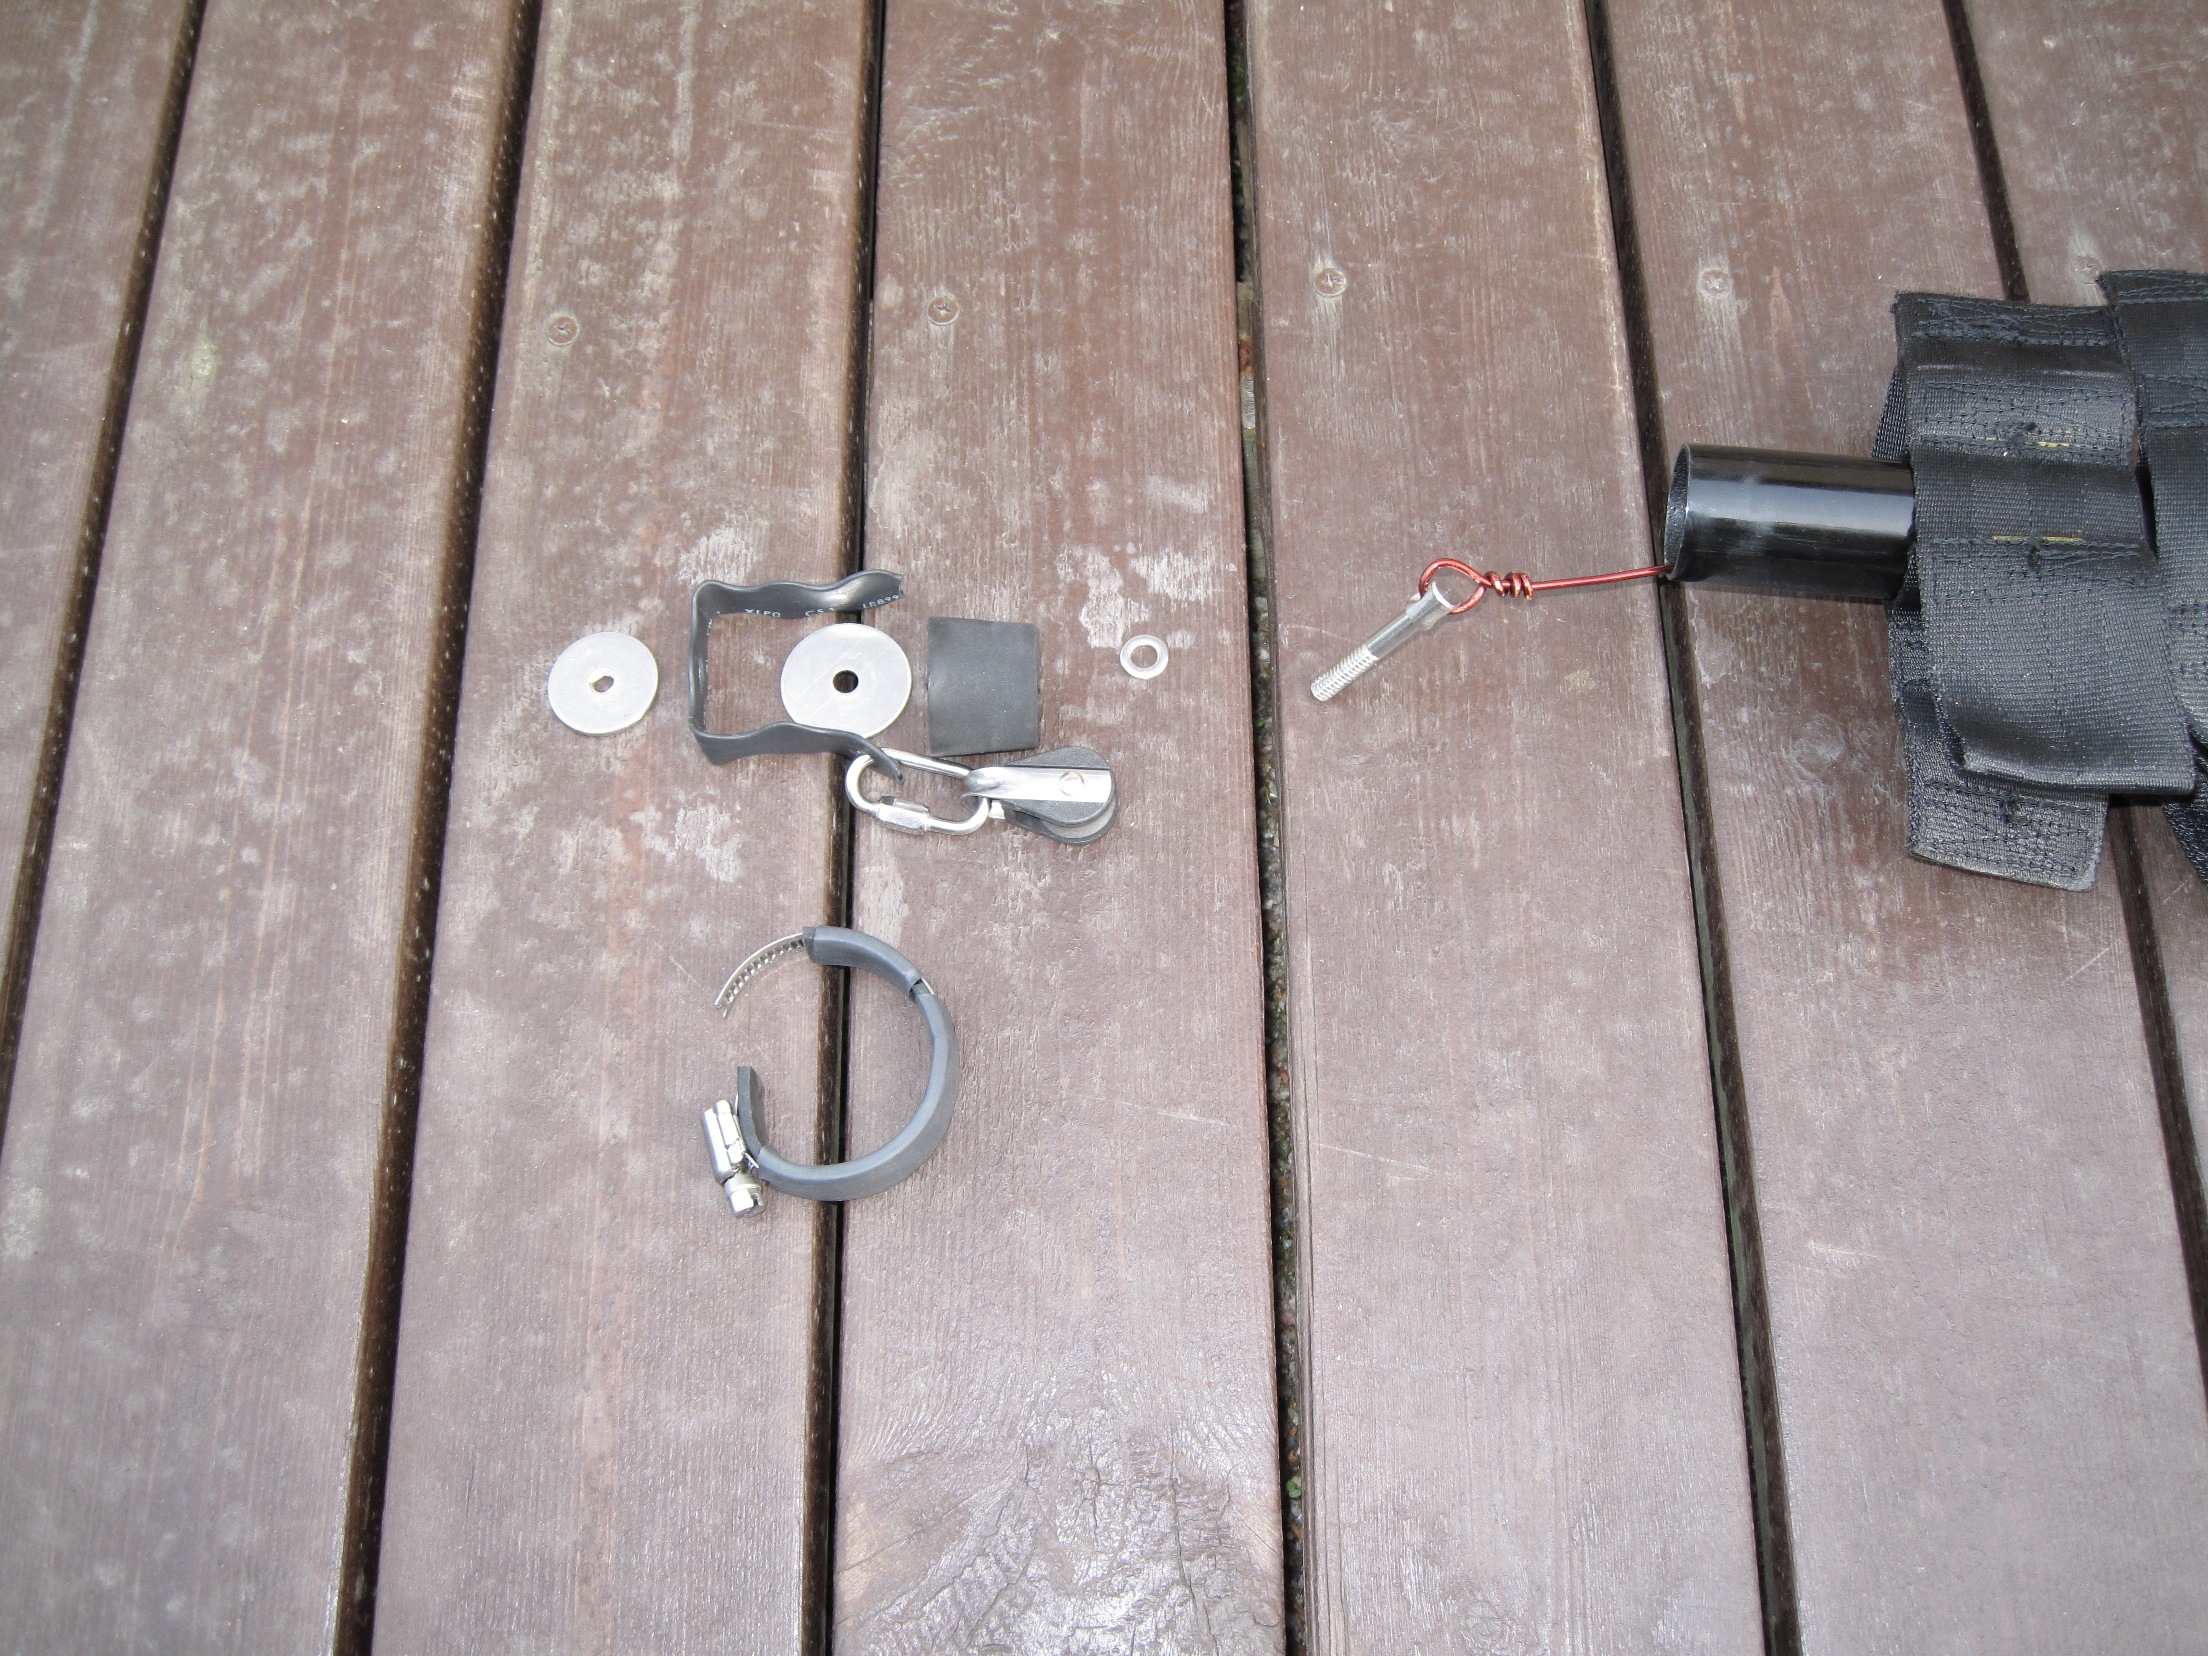 Top plug and pulley attachment before assembly